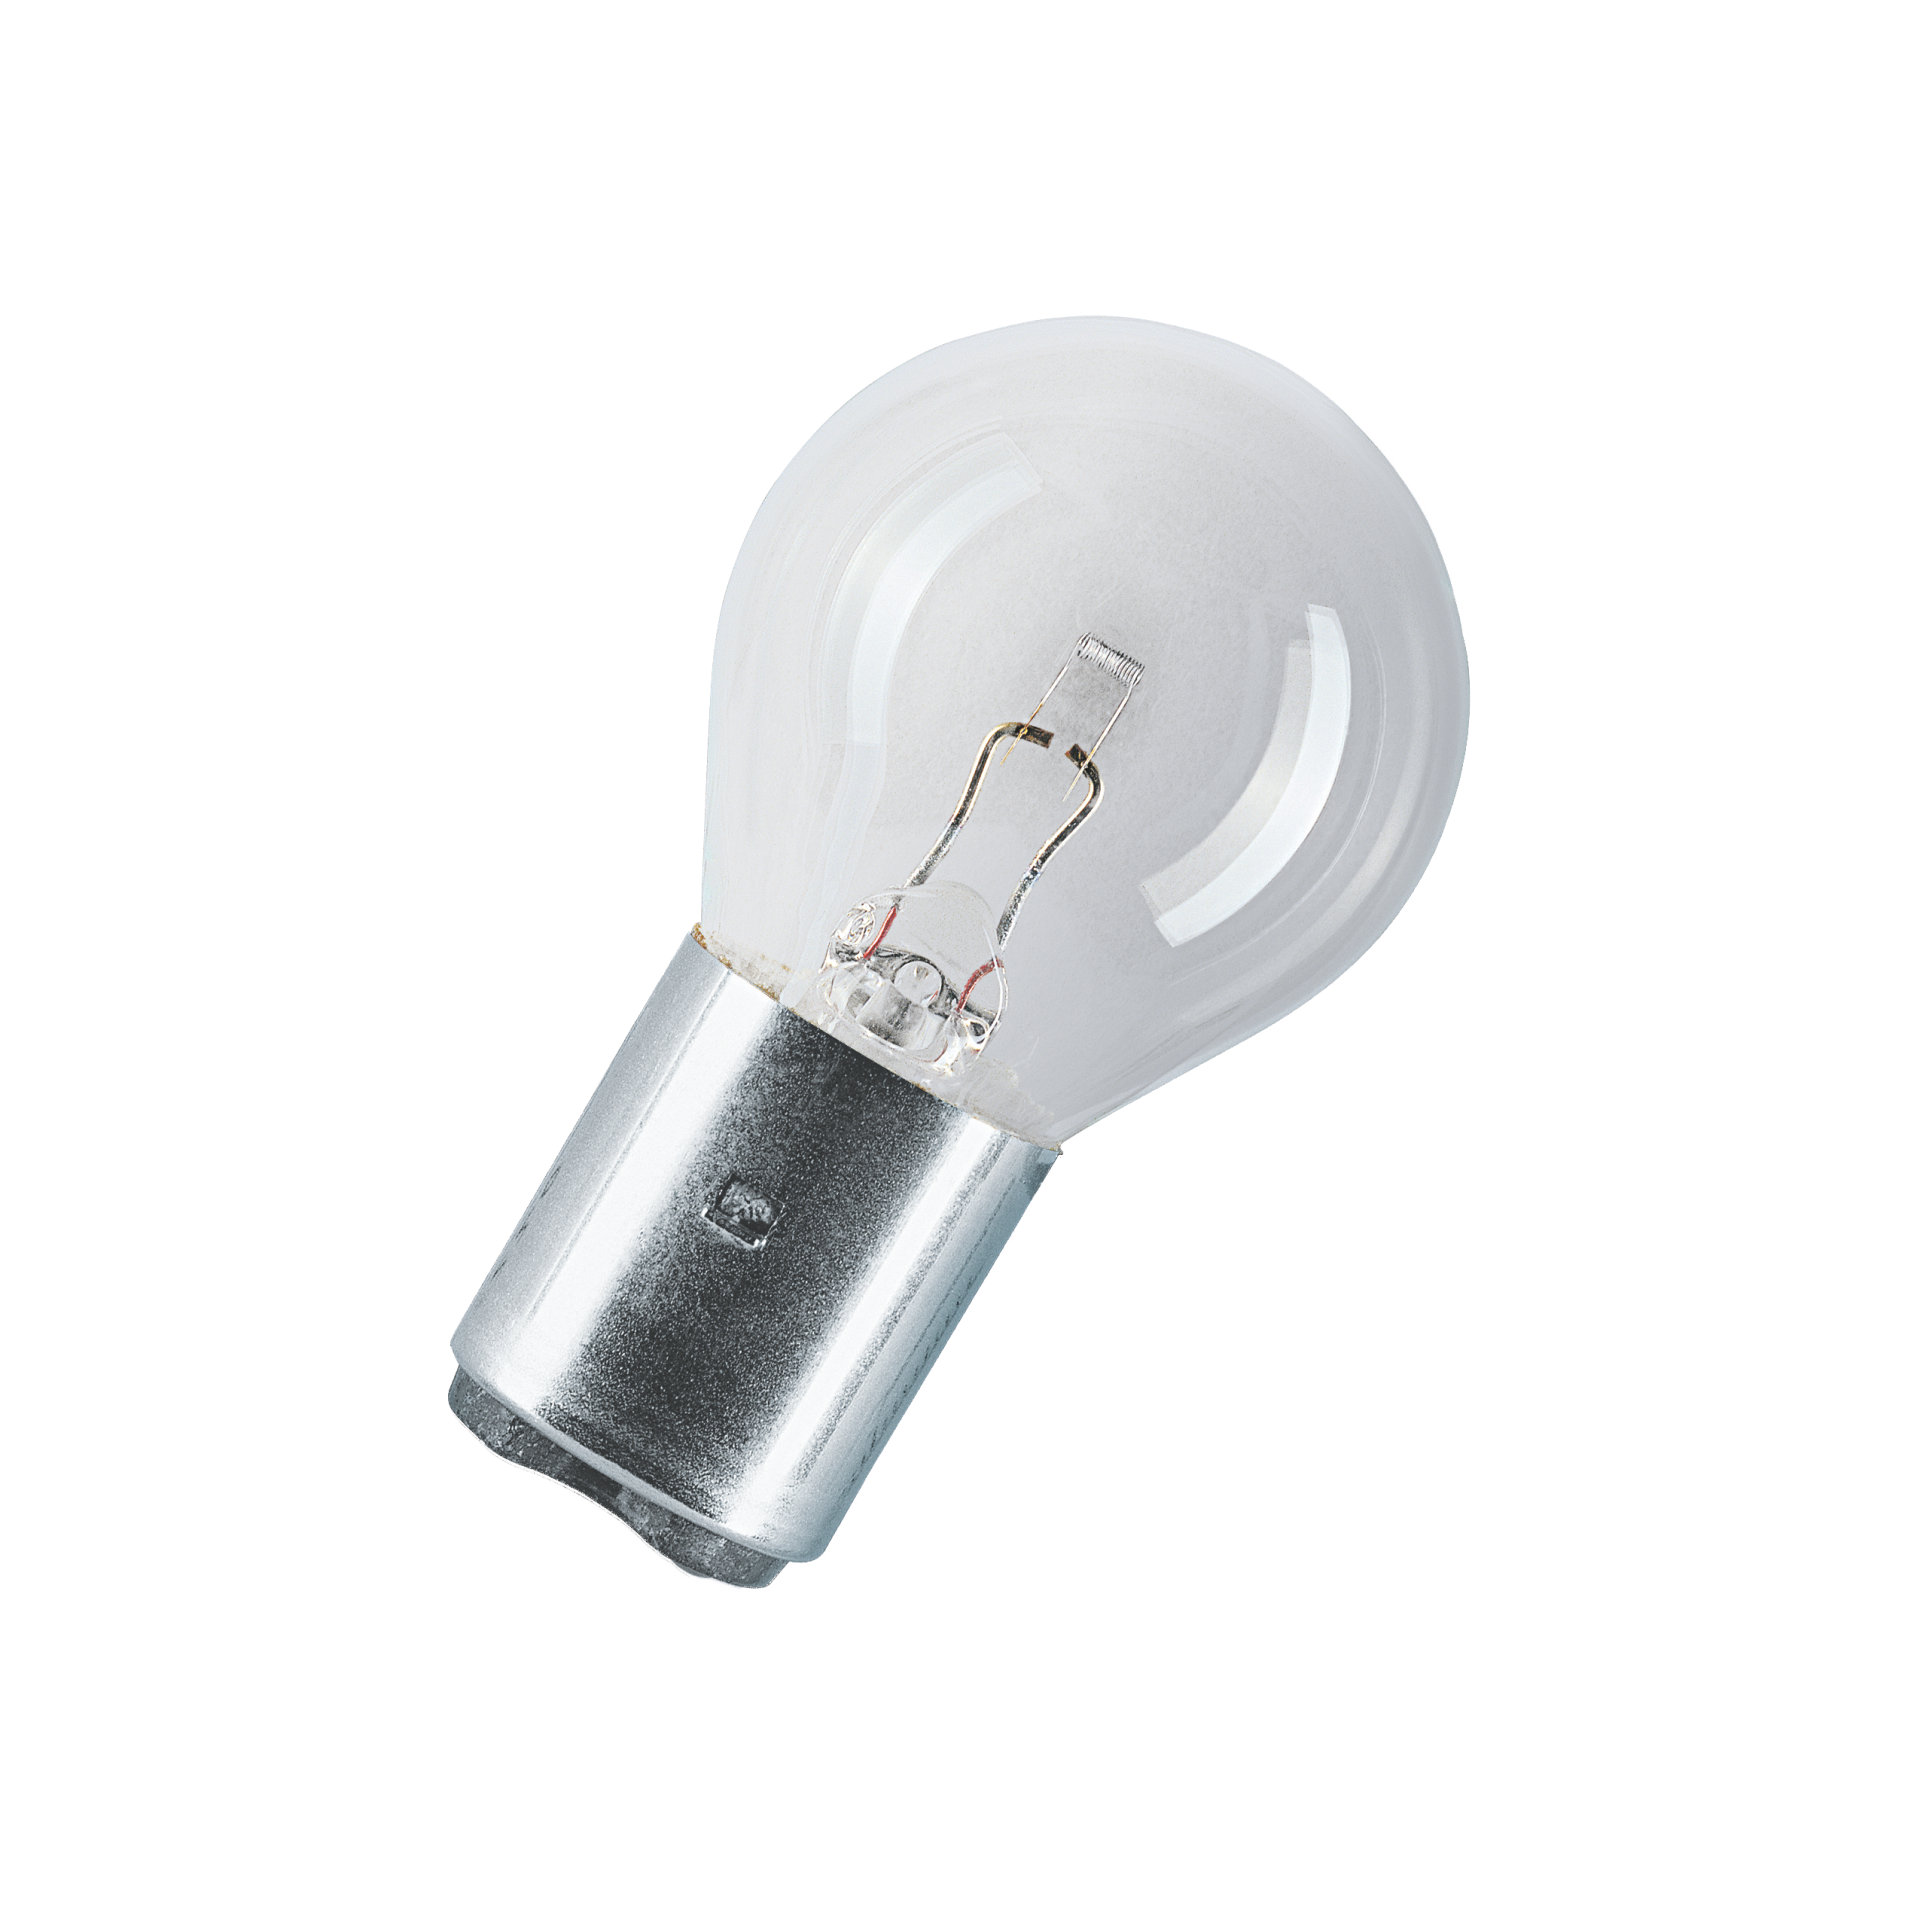 Low-voltage over-pressure single-coil lamps, railway